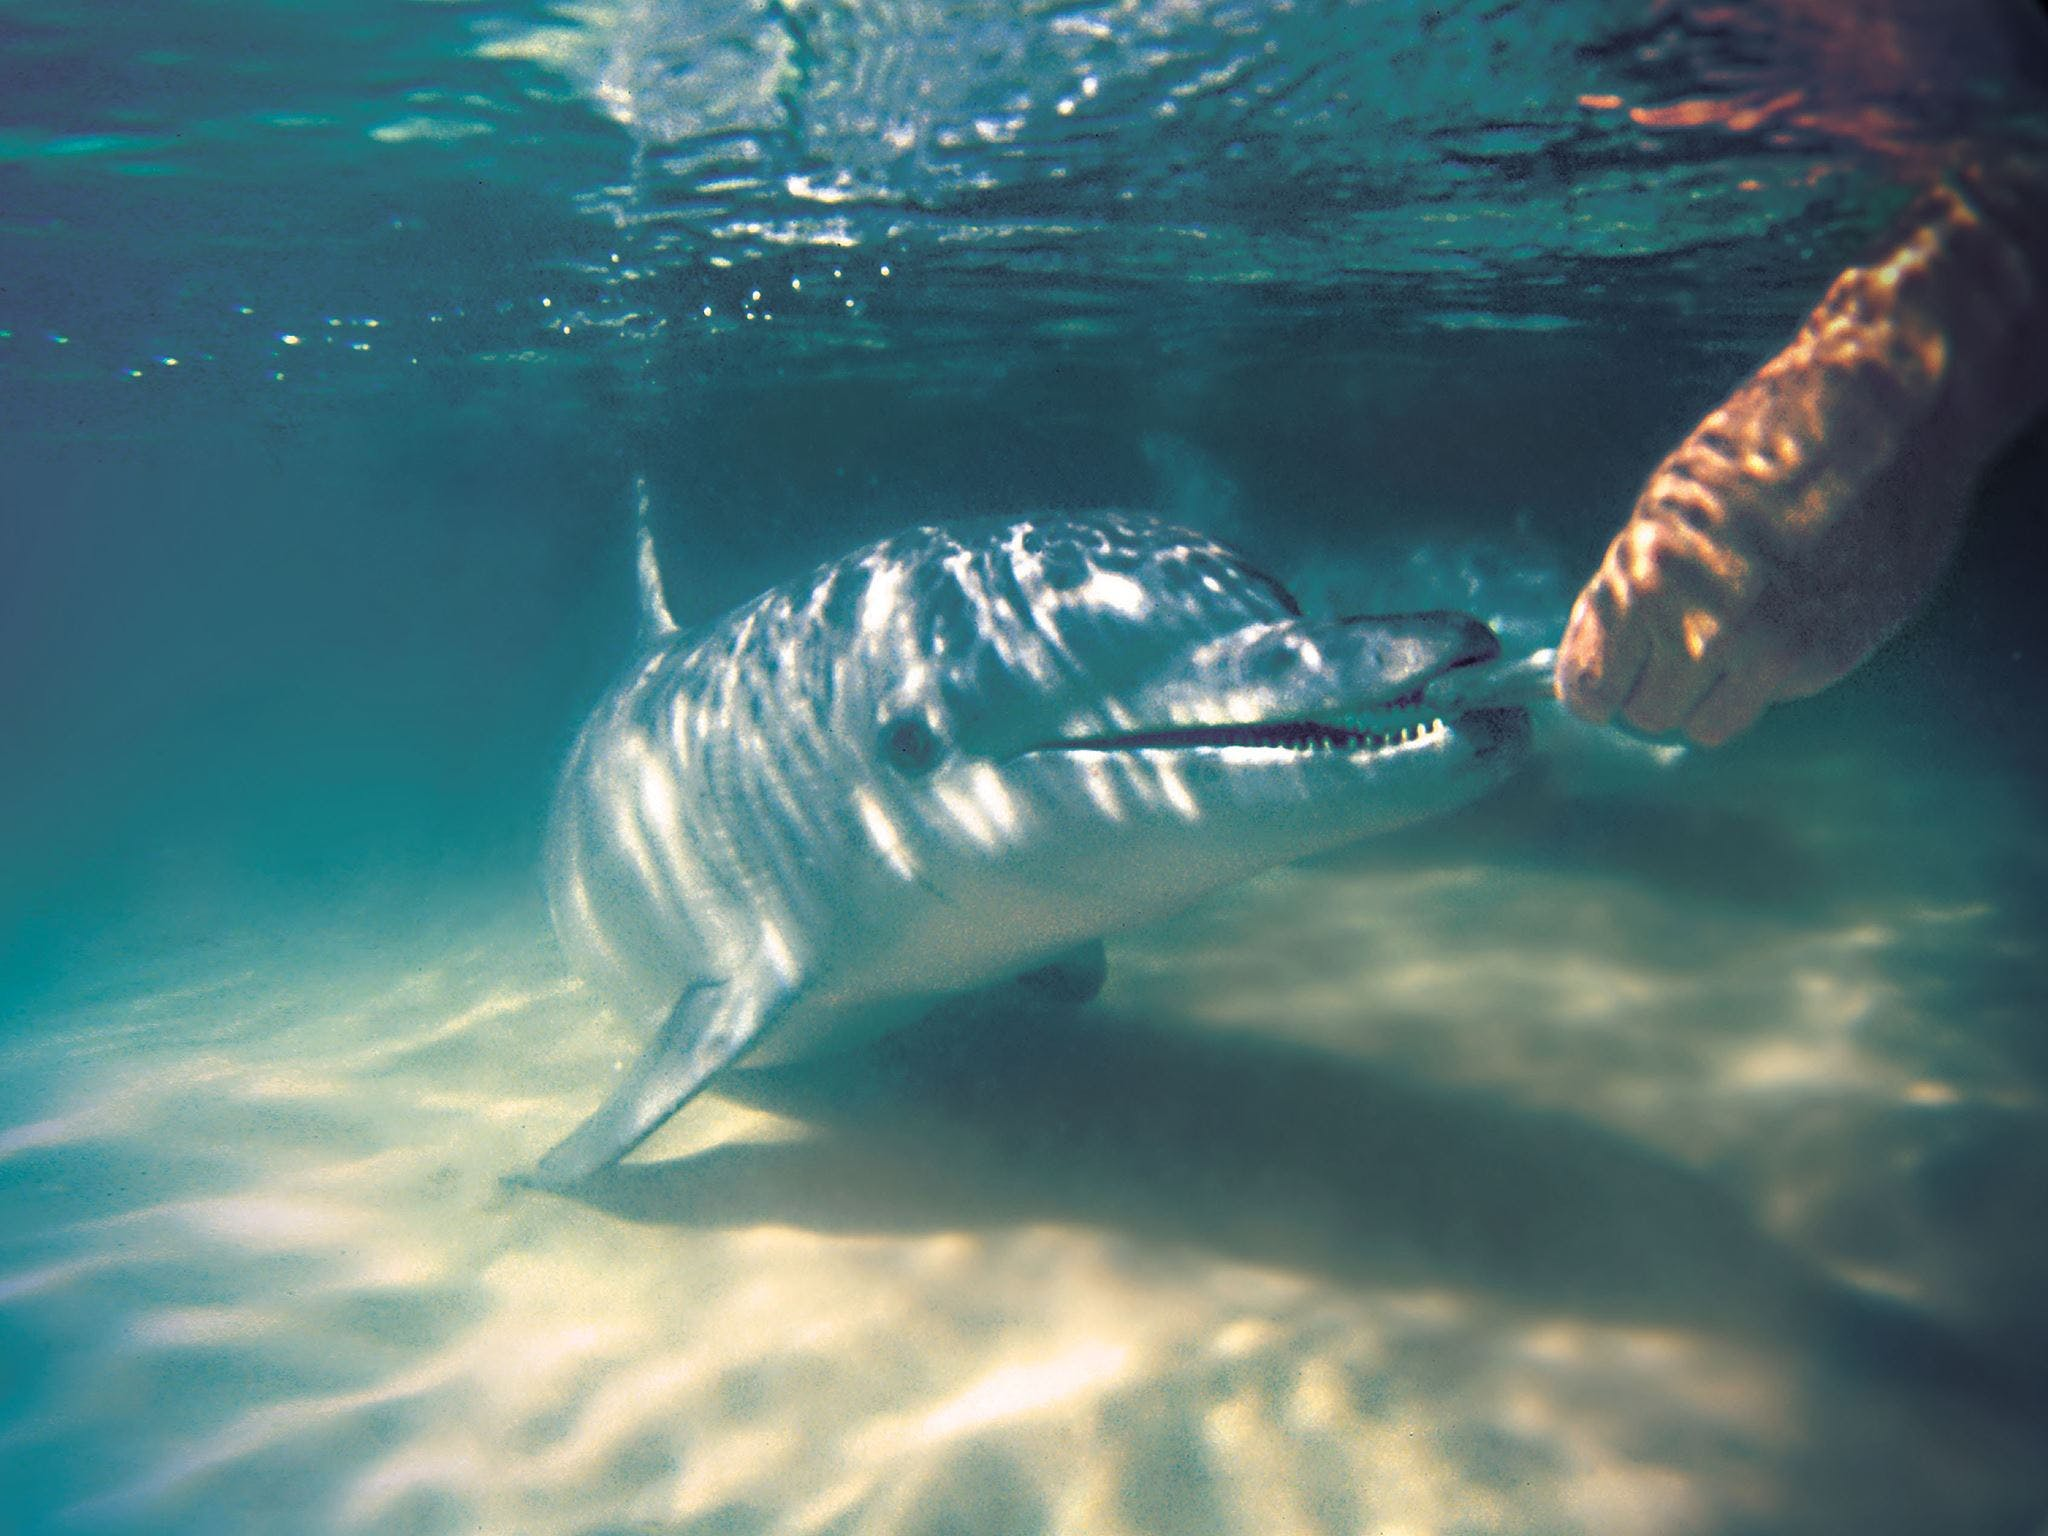 Tangalooma Wild Dolphin Feeding Logo and Images